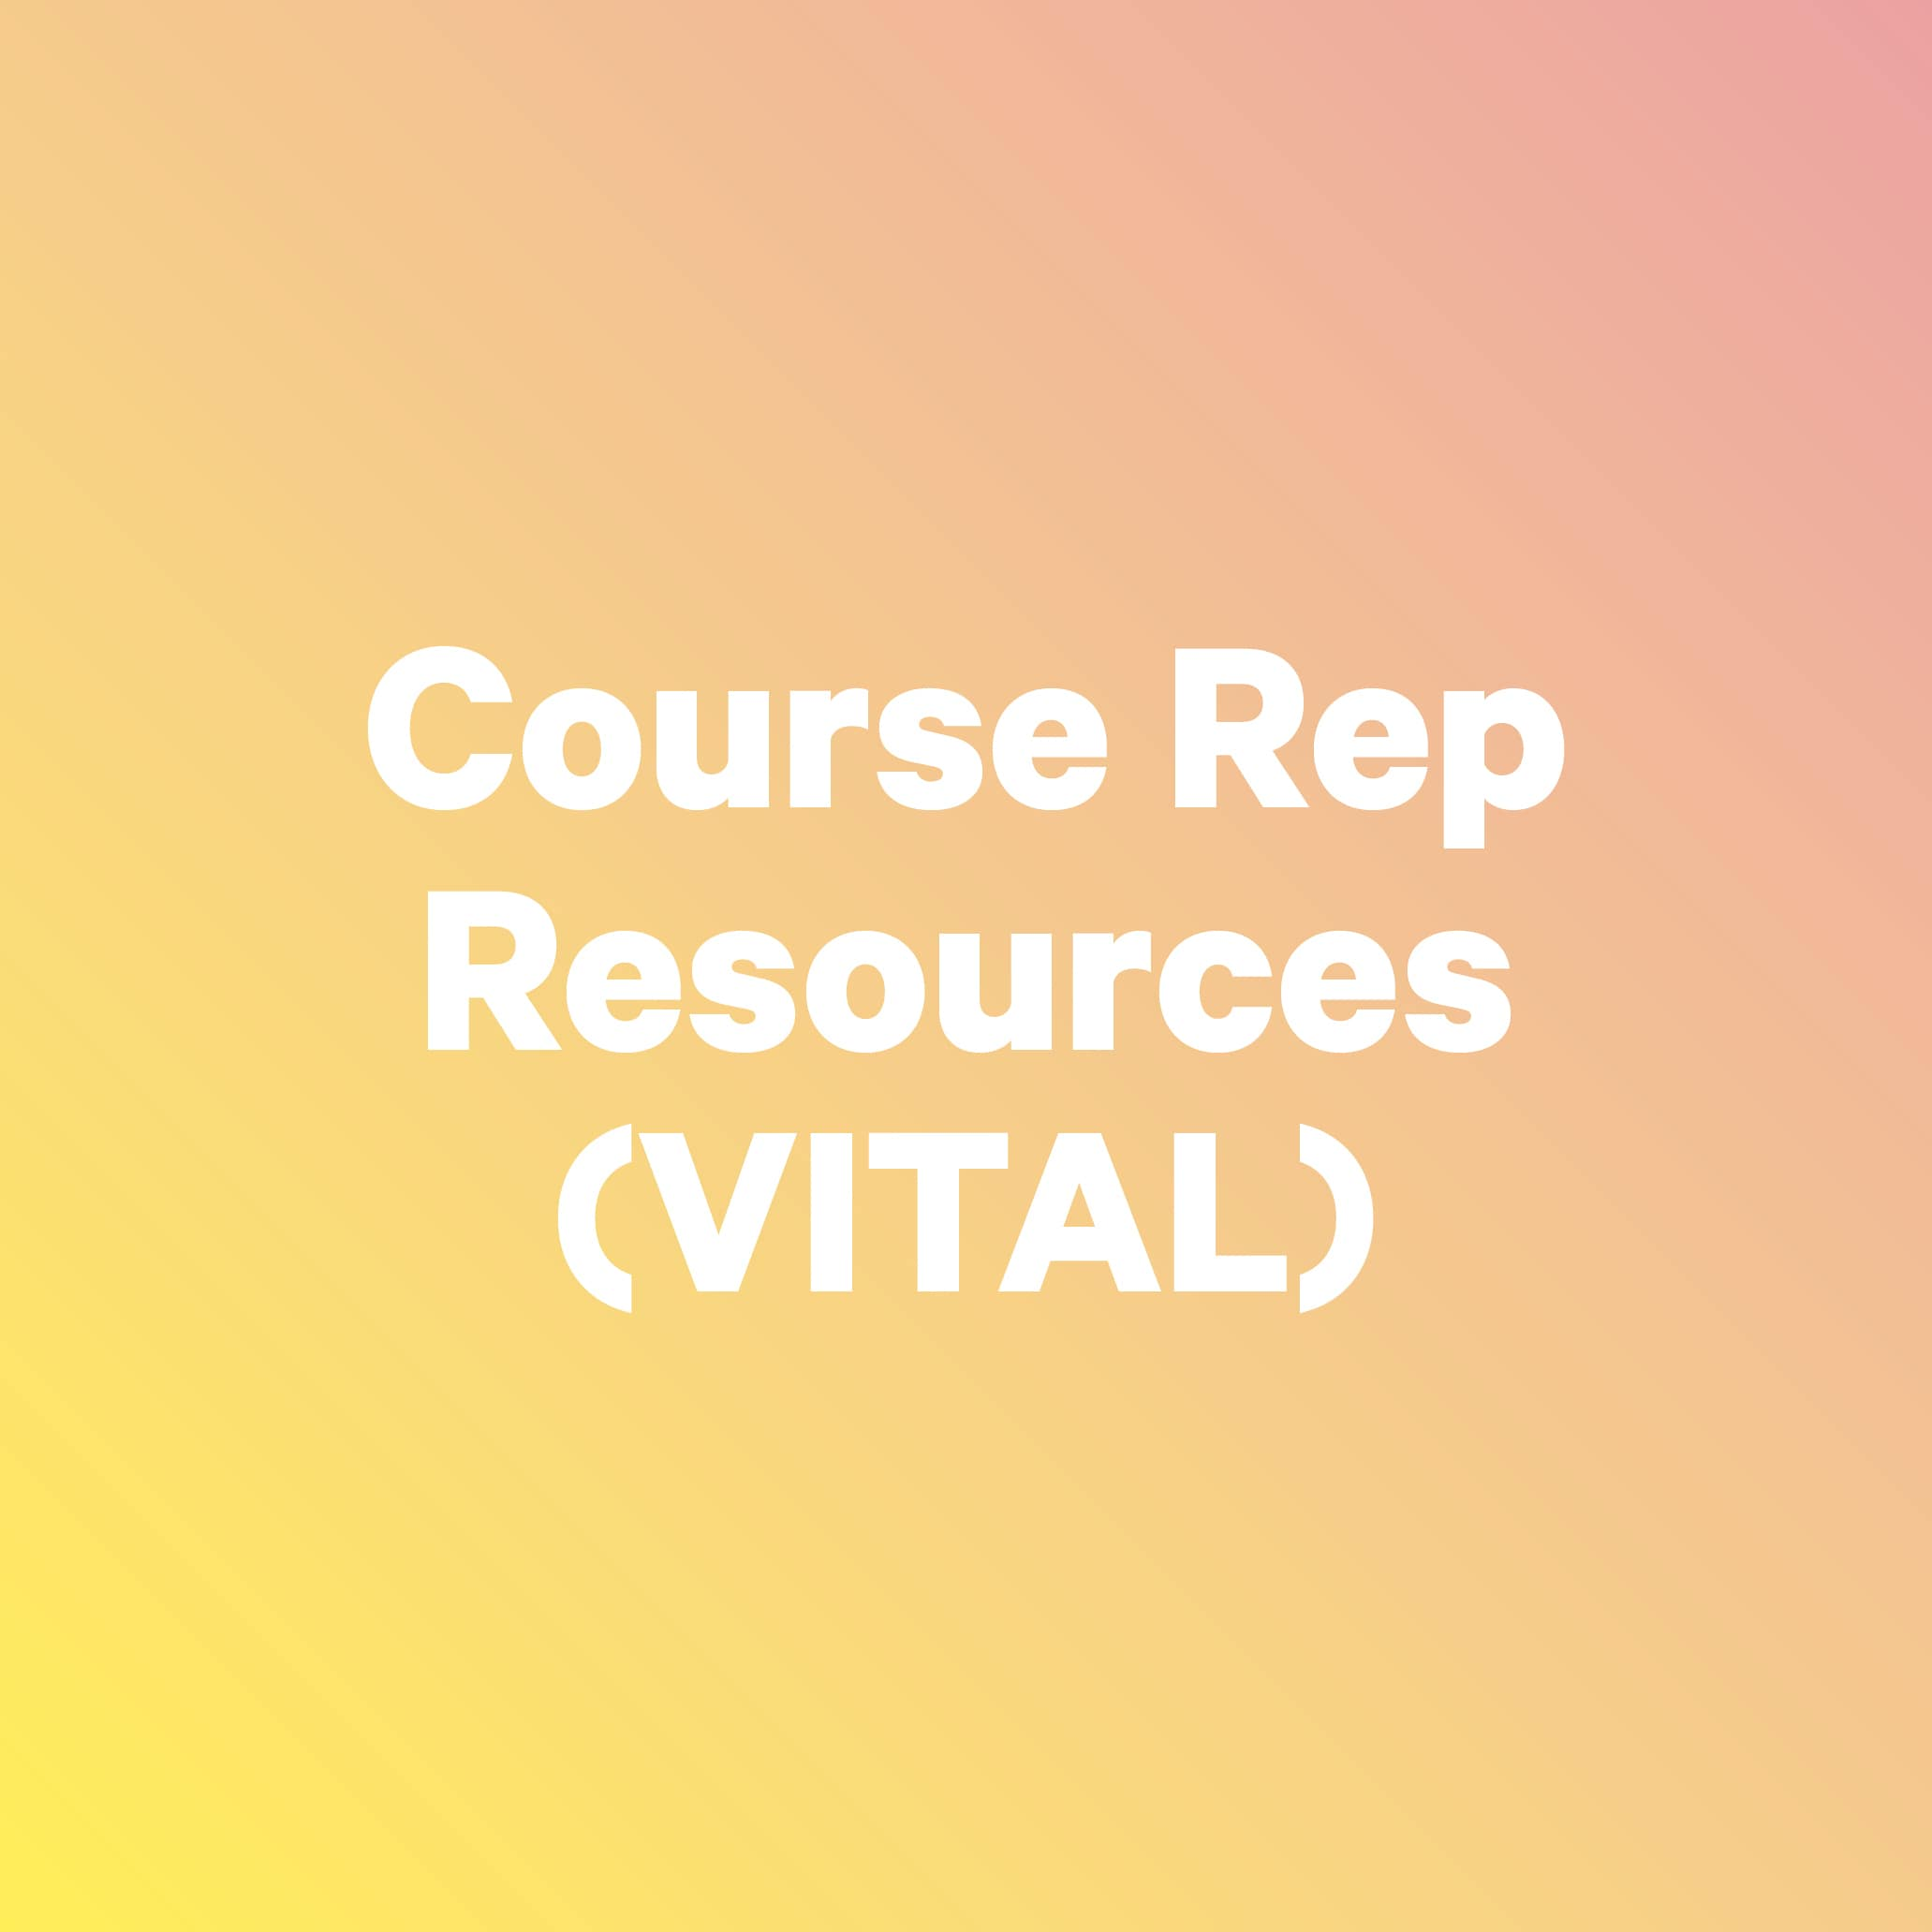 Course rep resources - Vital